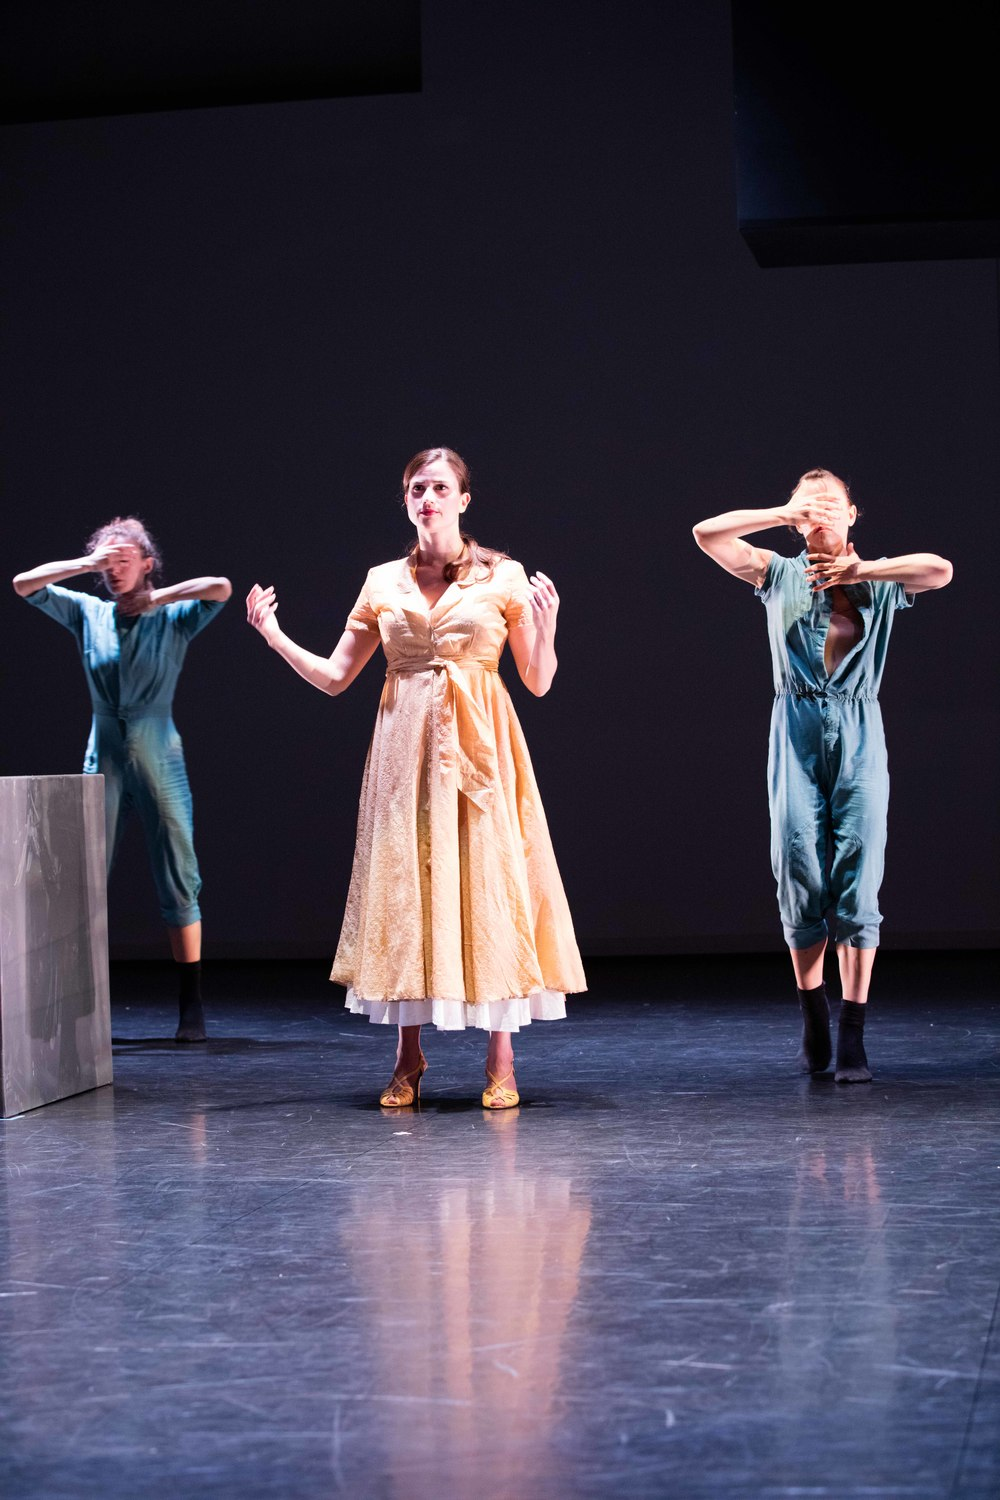 From the left: Nina Brindamour, Anna Ward, and Danielle Davidson/photo by Daniel J. van Ackere